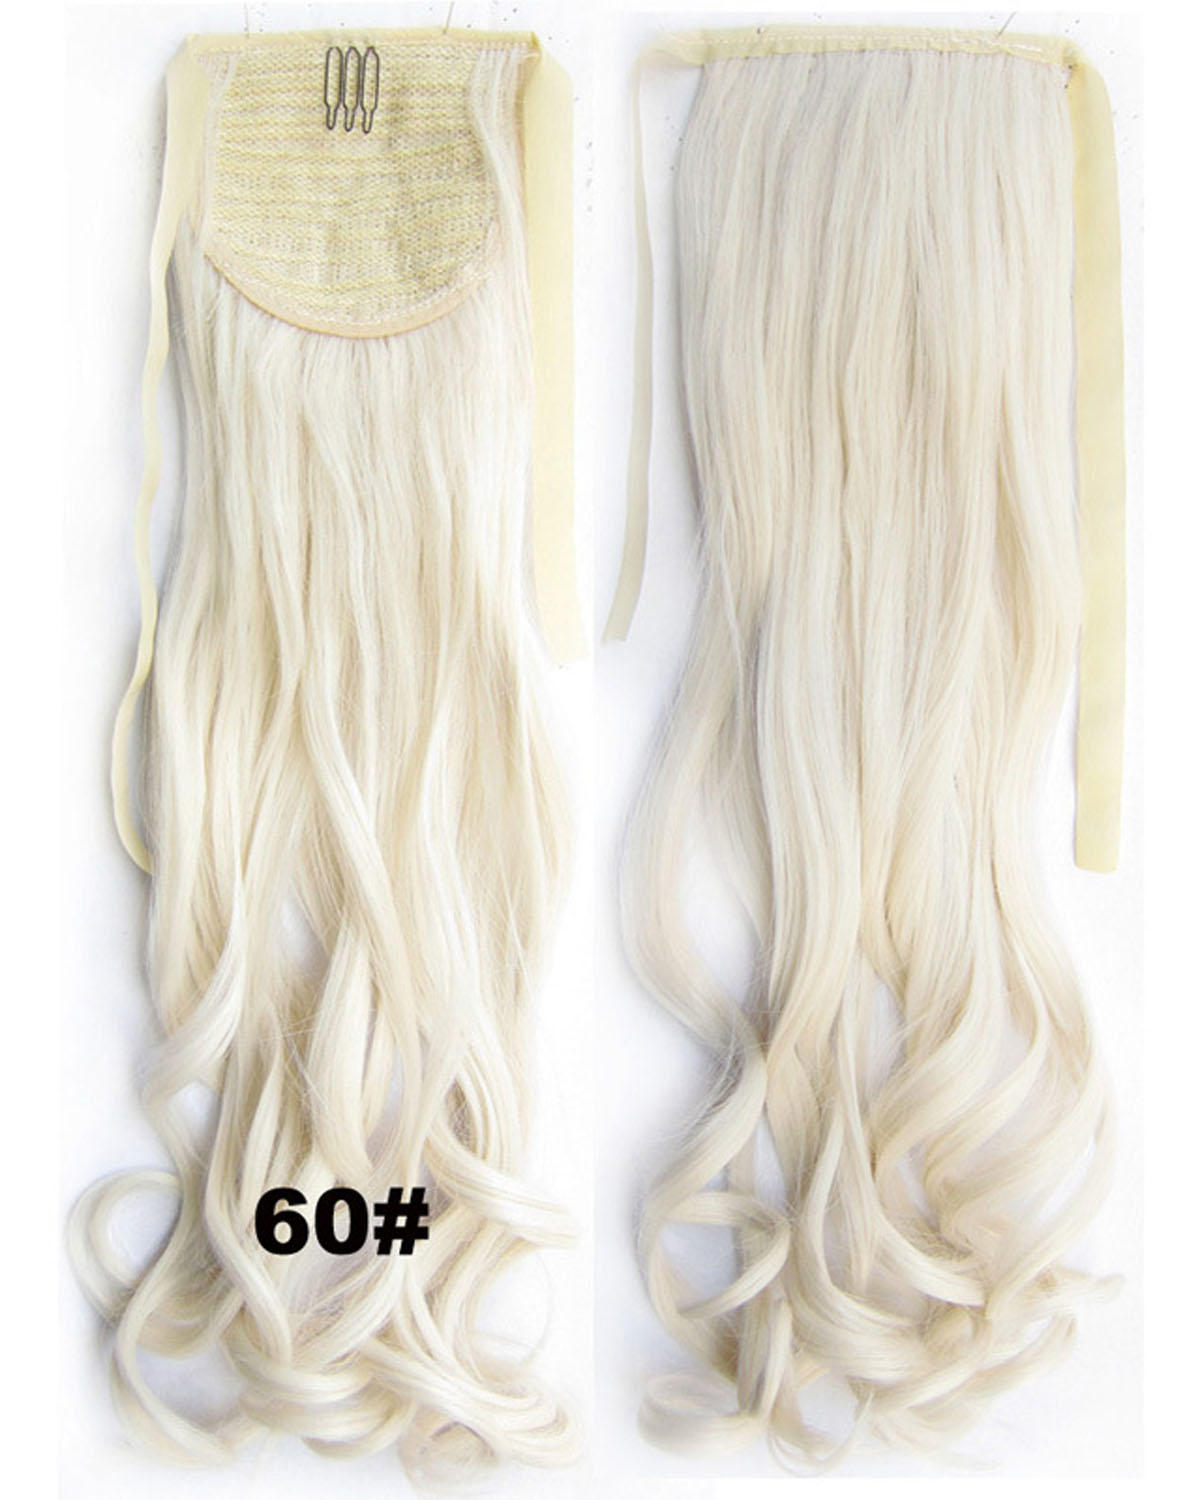 22 Inch Lady Salable Curly and Long Lace/Ribbon Synthetic Hair Ponytail  60# Good Quality